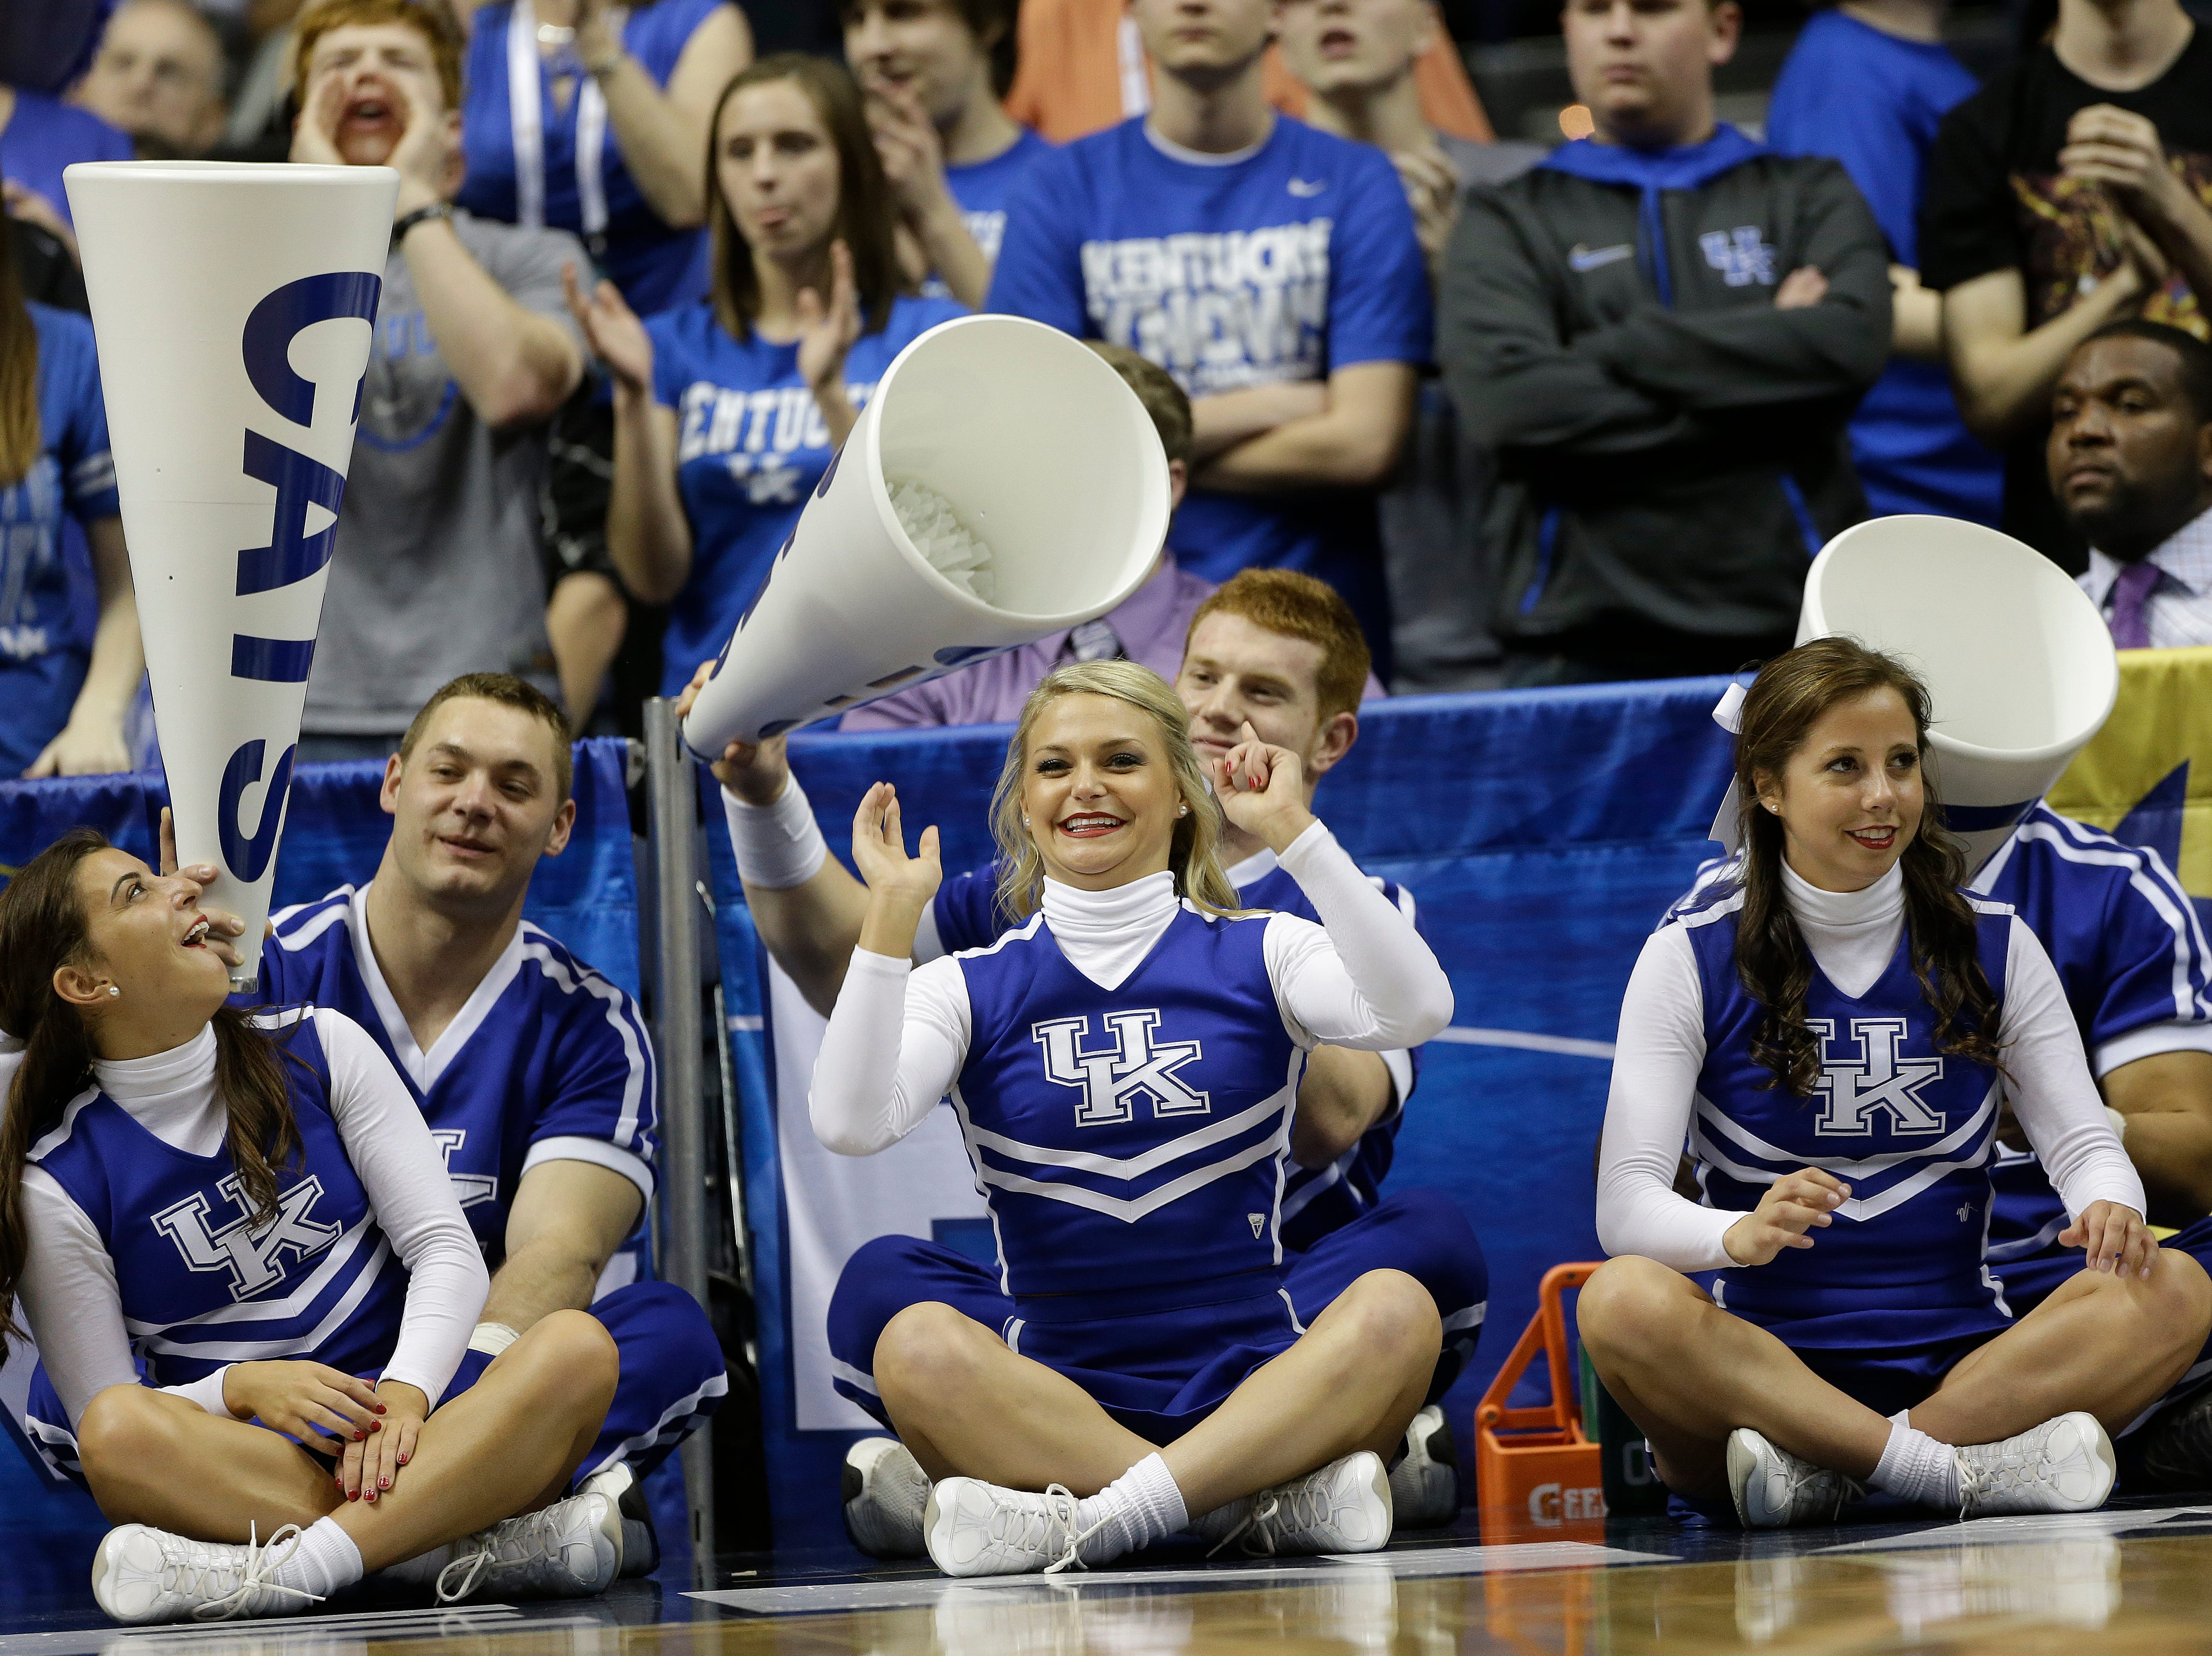 Kentucky  cheerleaders perform during the second half of an NCAA college basketball game against the Vanderbilt at the Southeastern Conference tournament, Friday, March 15, 2013, in Nashville, Tenn. (AP Photo/Dave Martin)